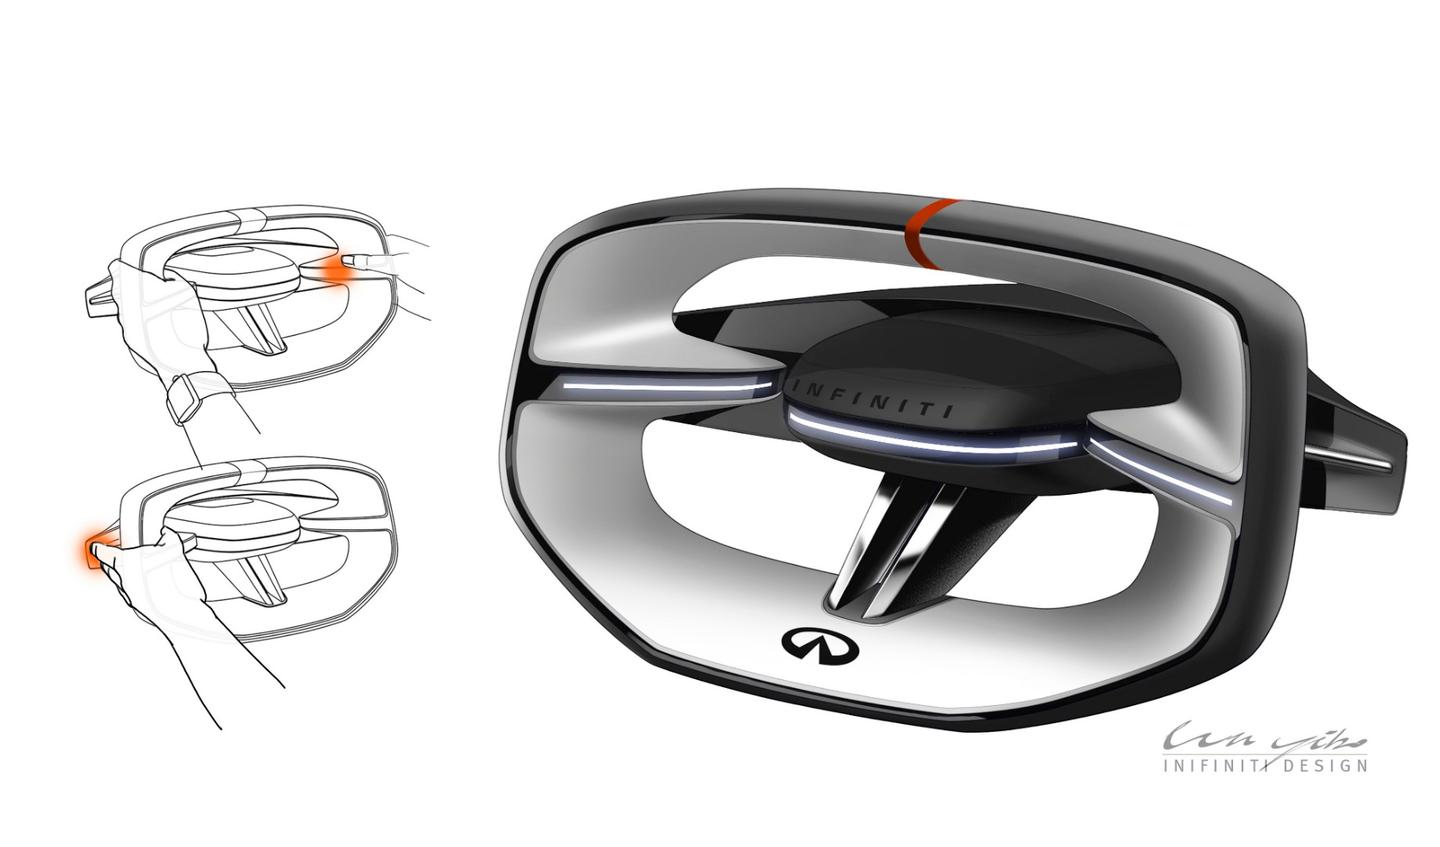 An early design CGI, based on sketches, shows the steering wheel in the Qs Inspiration and its primary touch points